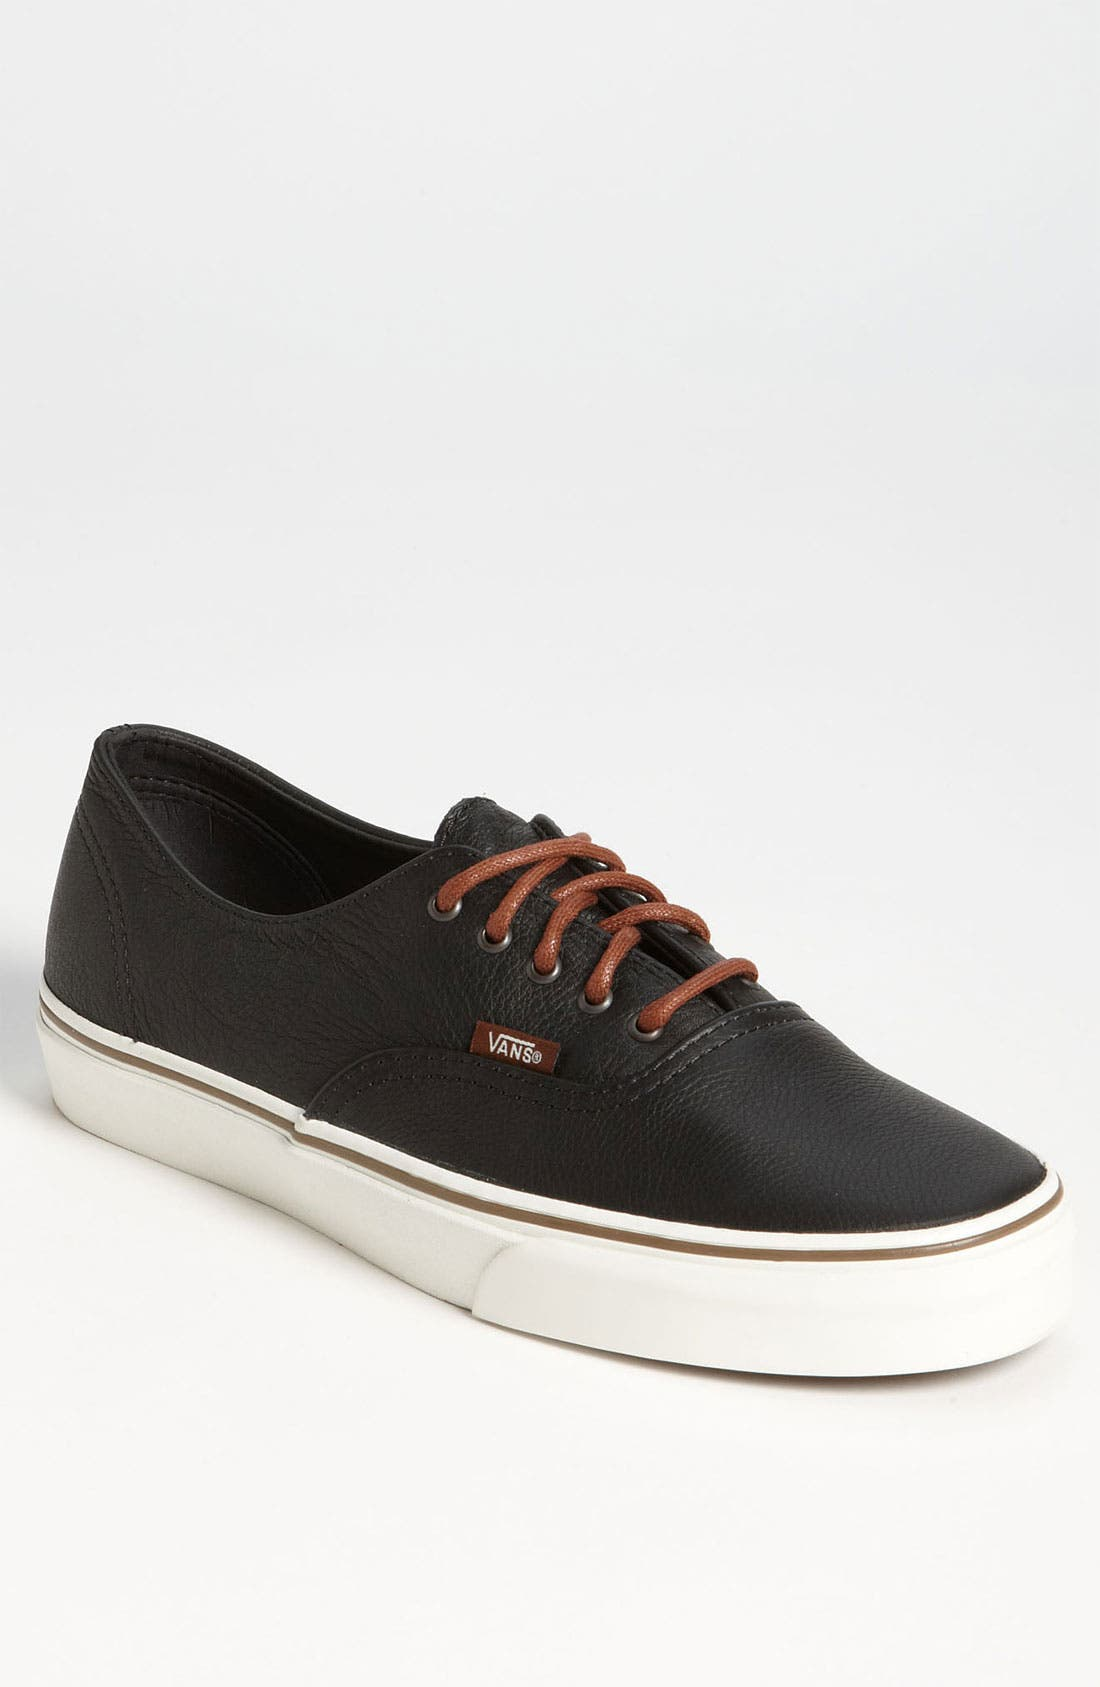 Alternate Image 1 Selected - Vans 'Cali - Authentic Decon' Leather Sneaker (Men)